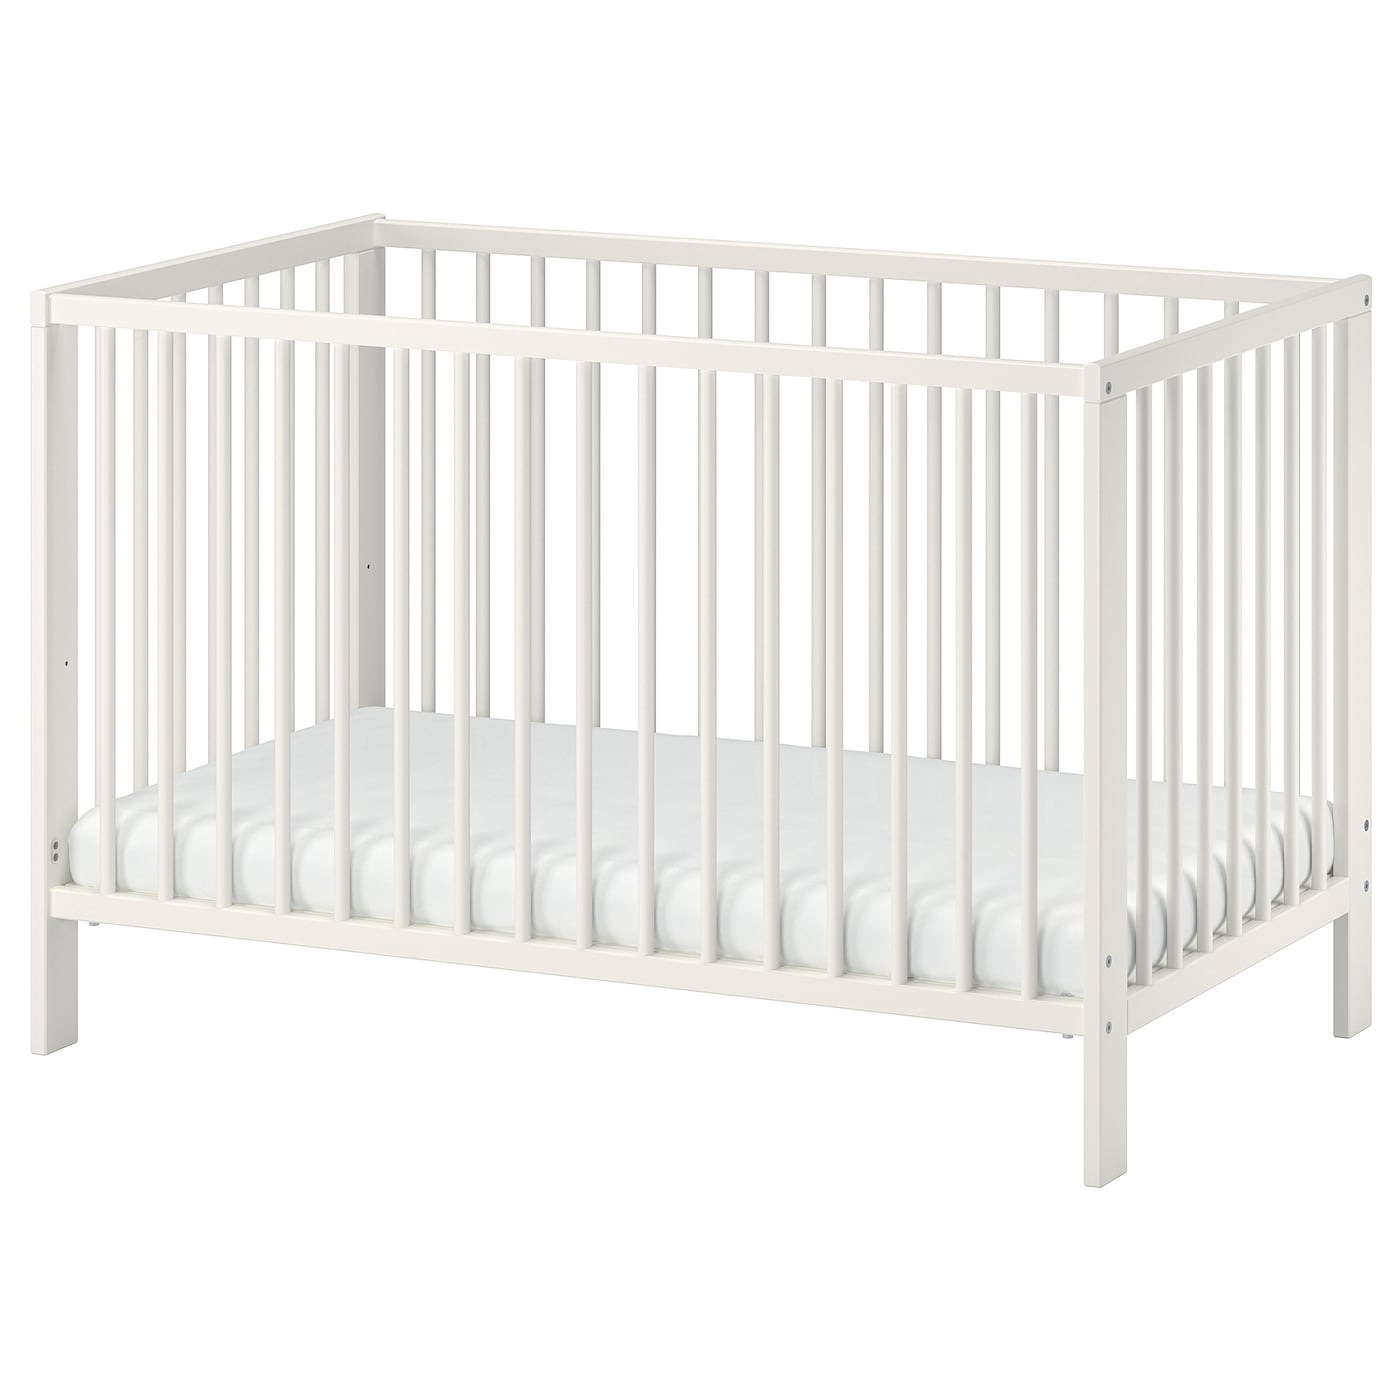 Ikea Gulliver Cot The Base Can Be Placed At Two Diffe Heights